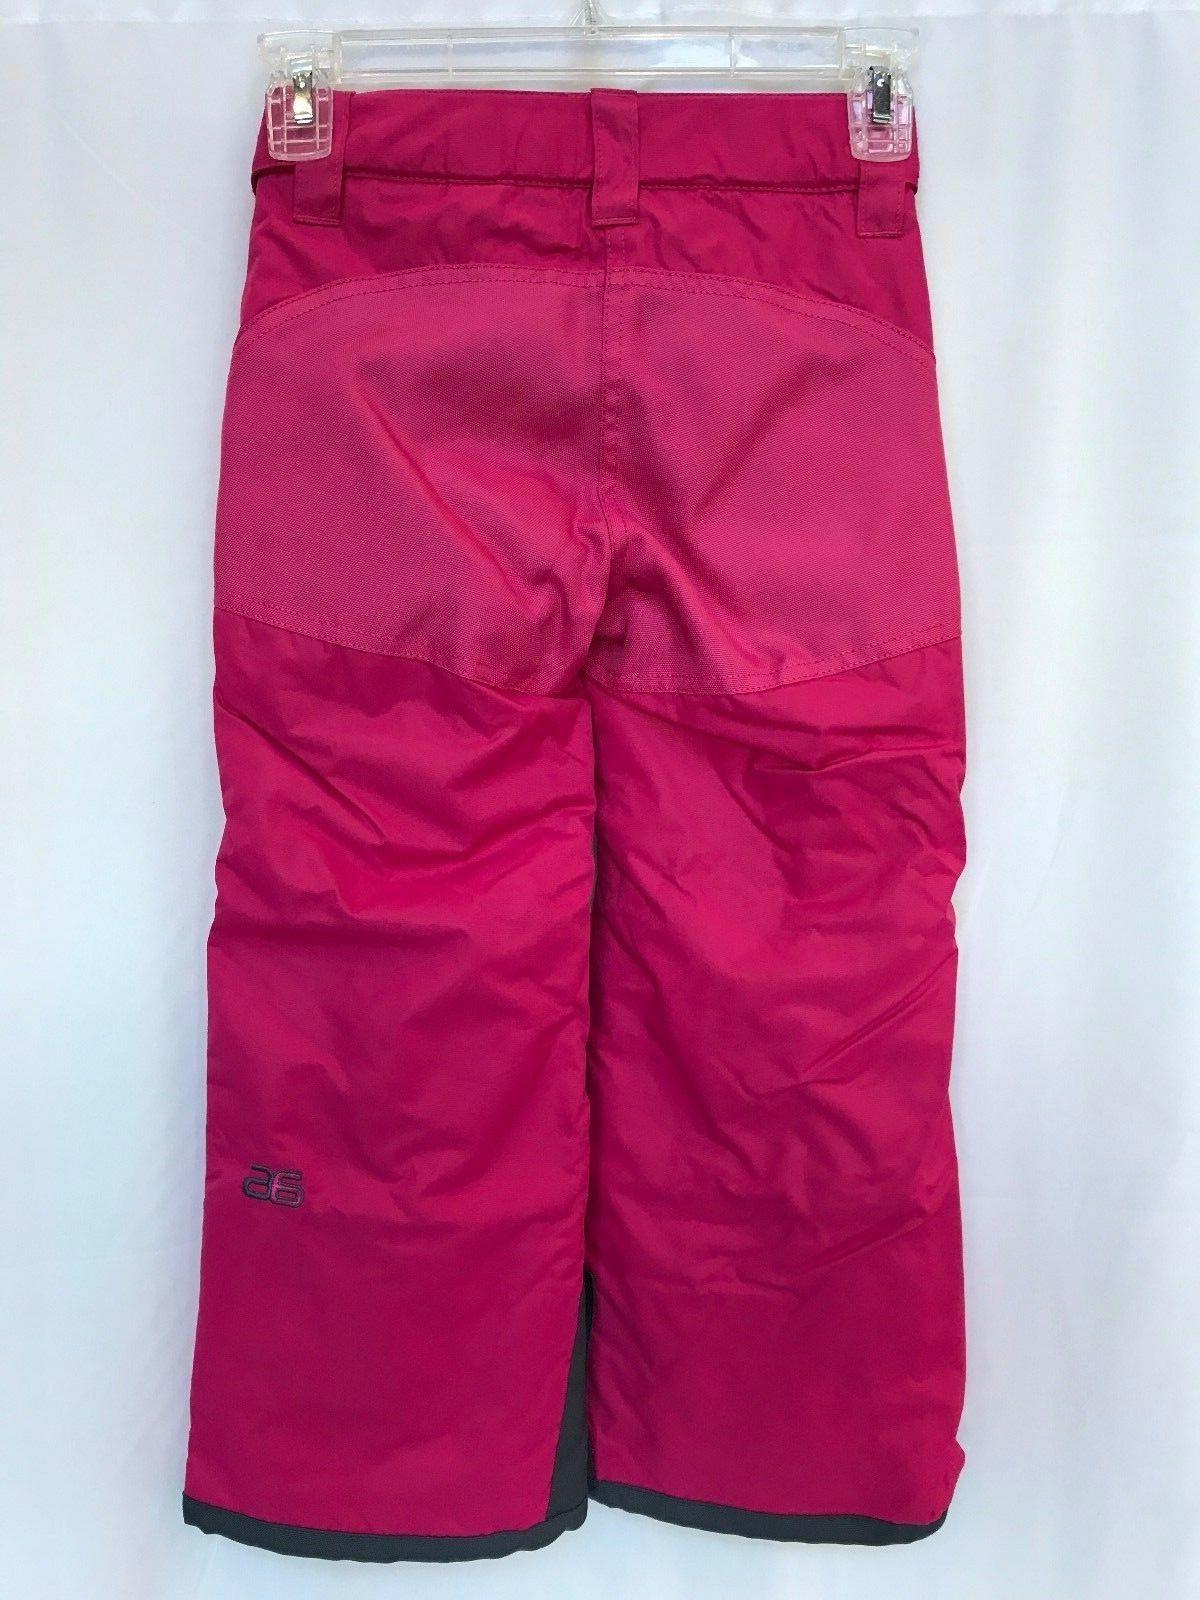 Arctix Youth Girls Insulated Water-Resistant Snowboard Ski Pants